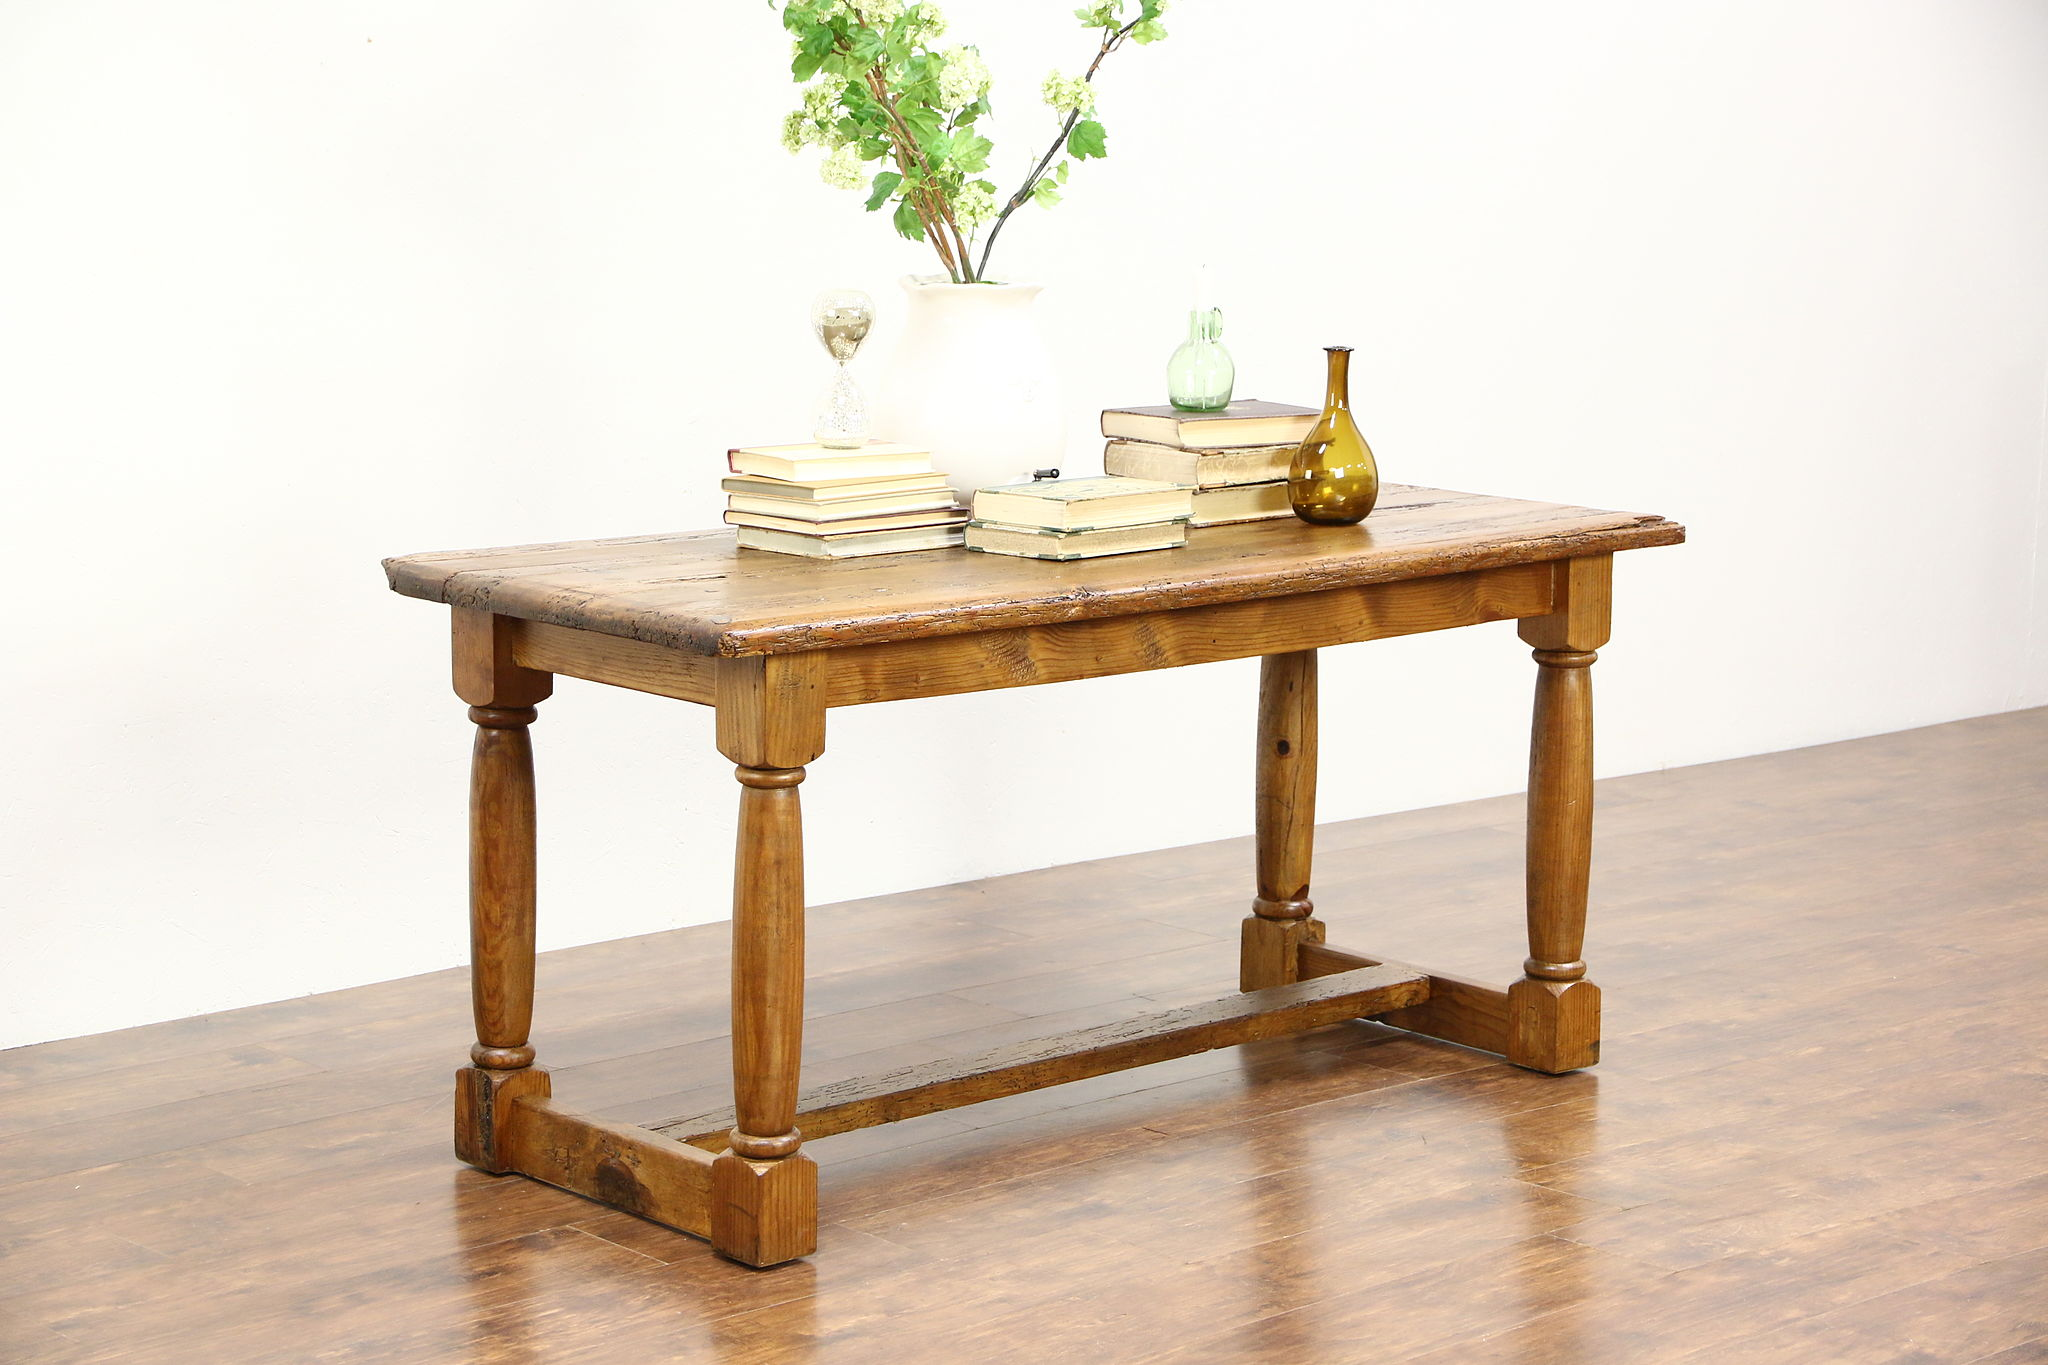 Rustic French Country Pine Trestle Dining Console Or Kitchen Island Table